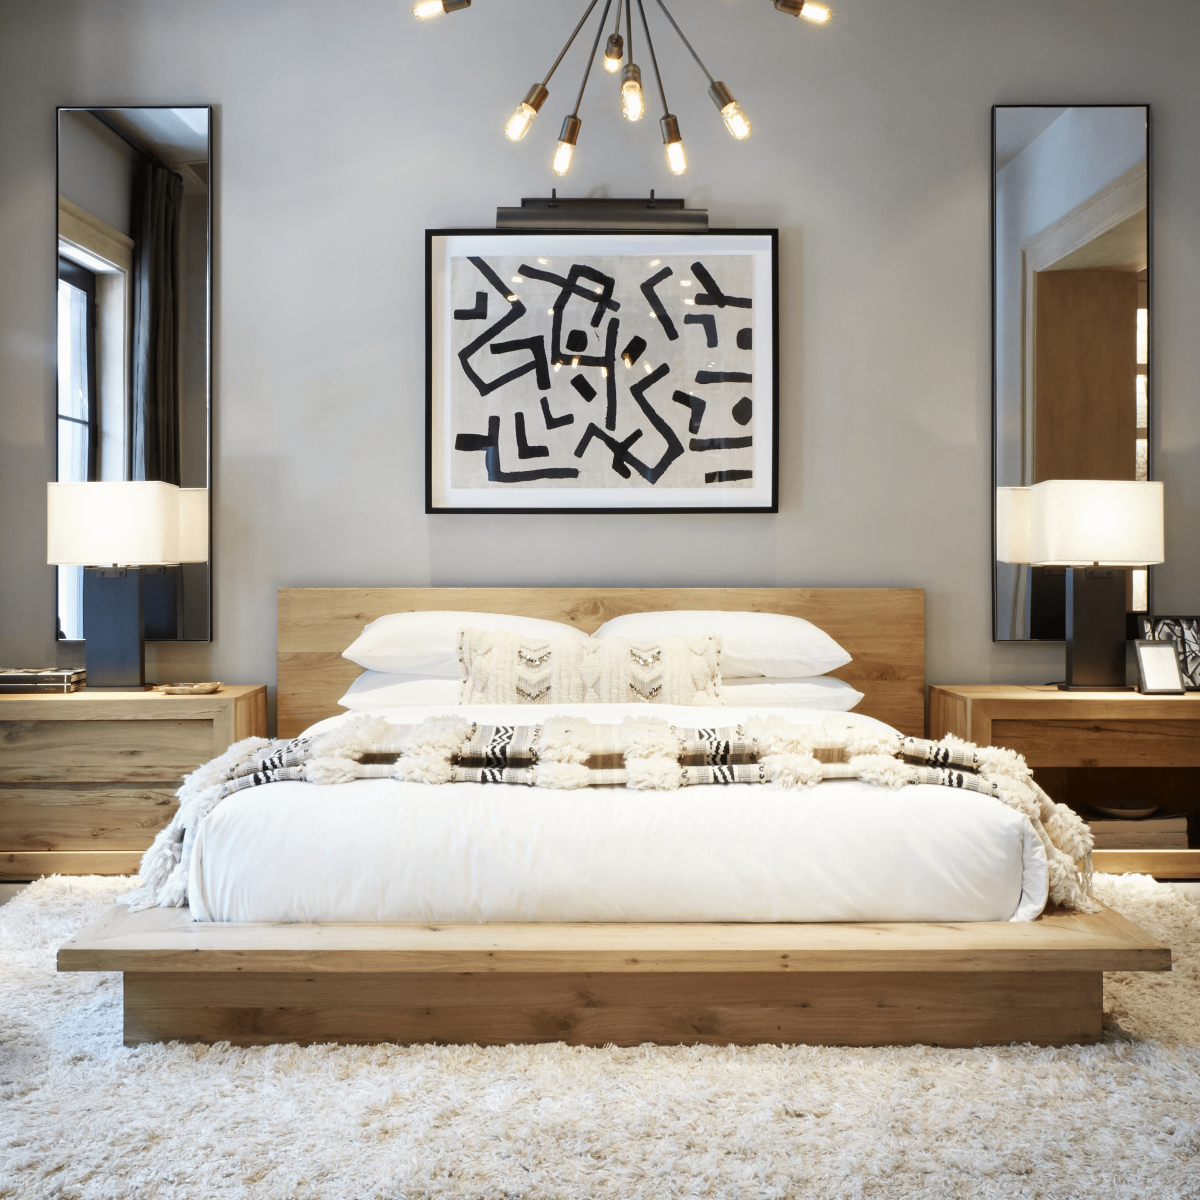 Where To Shop In Austin Right Now: 5 Best New Home Decor